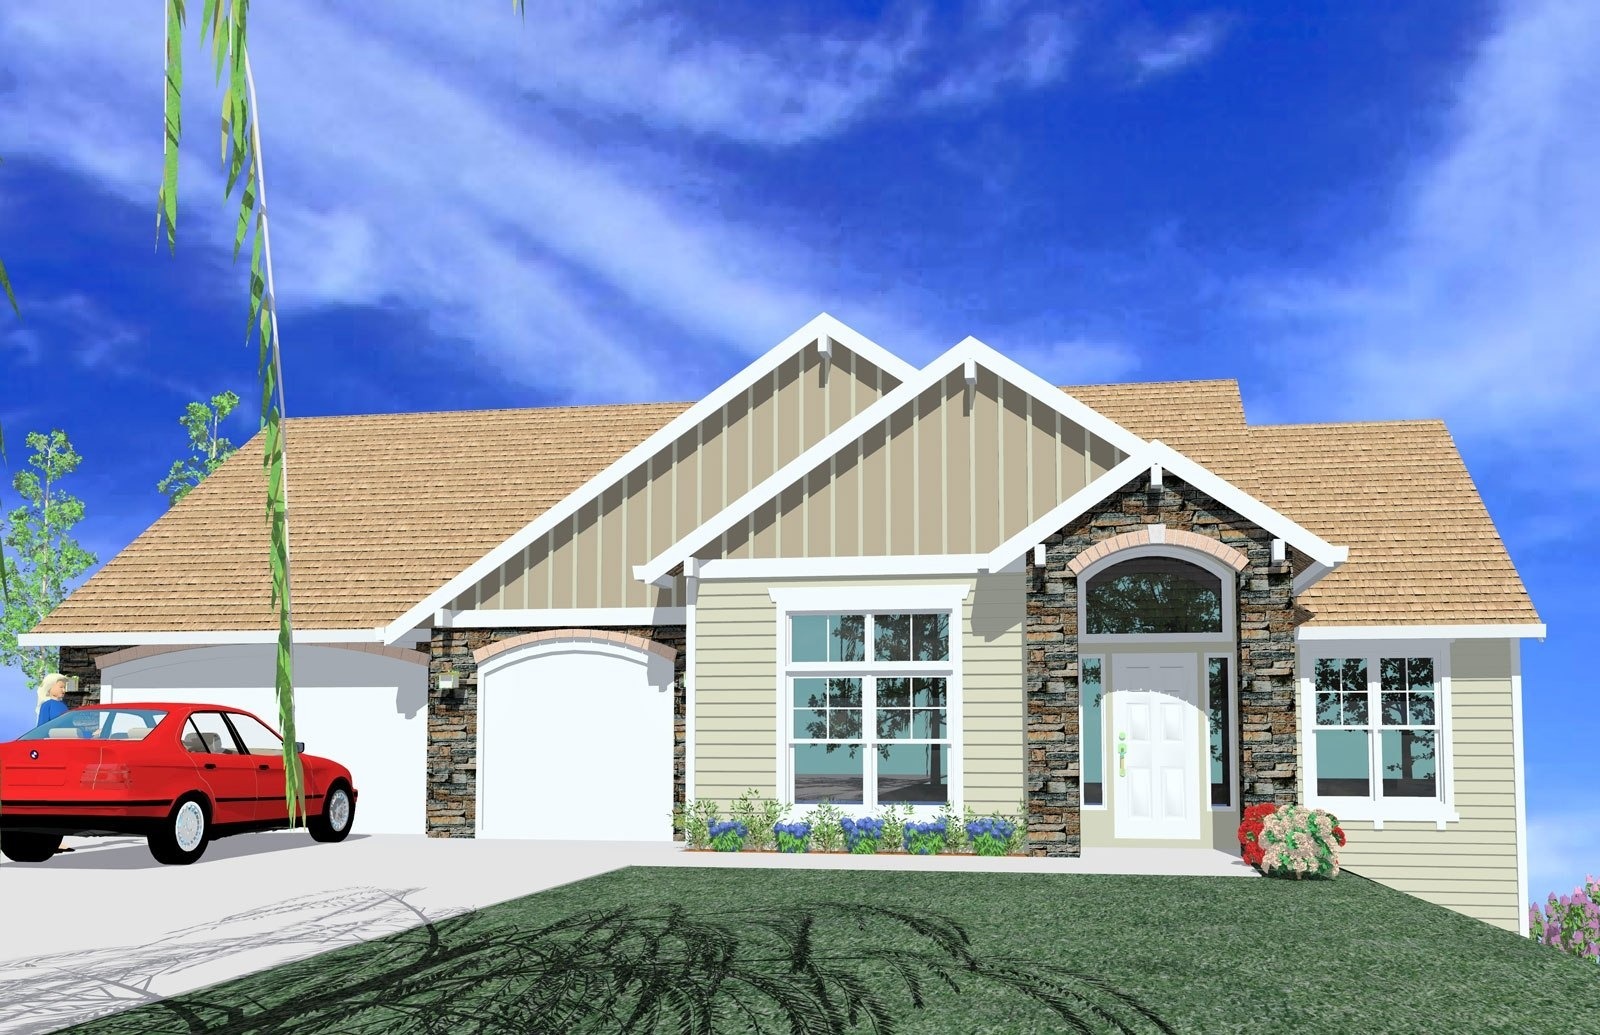 M 2957 house plan transitional house plans for Transitional house plans